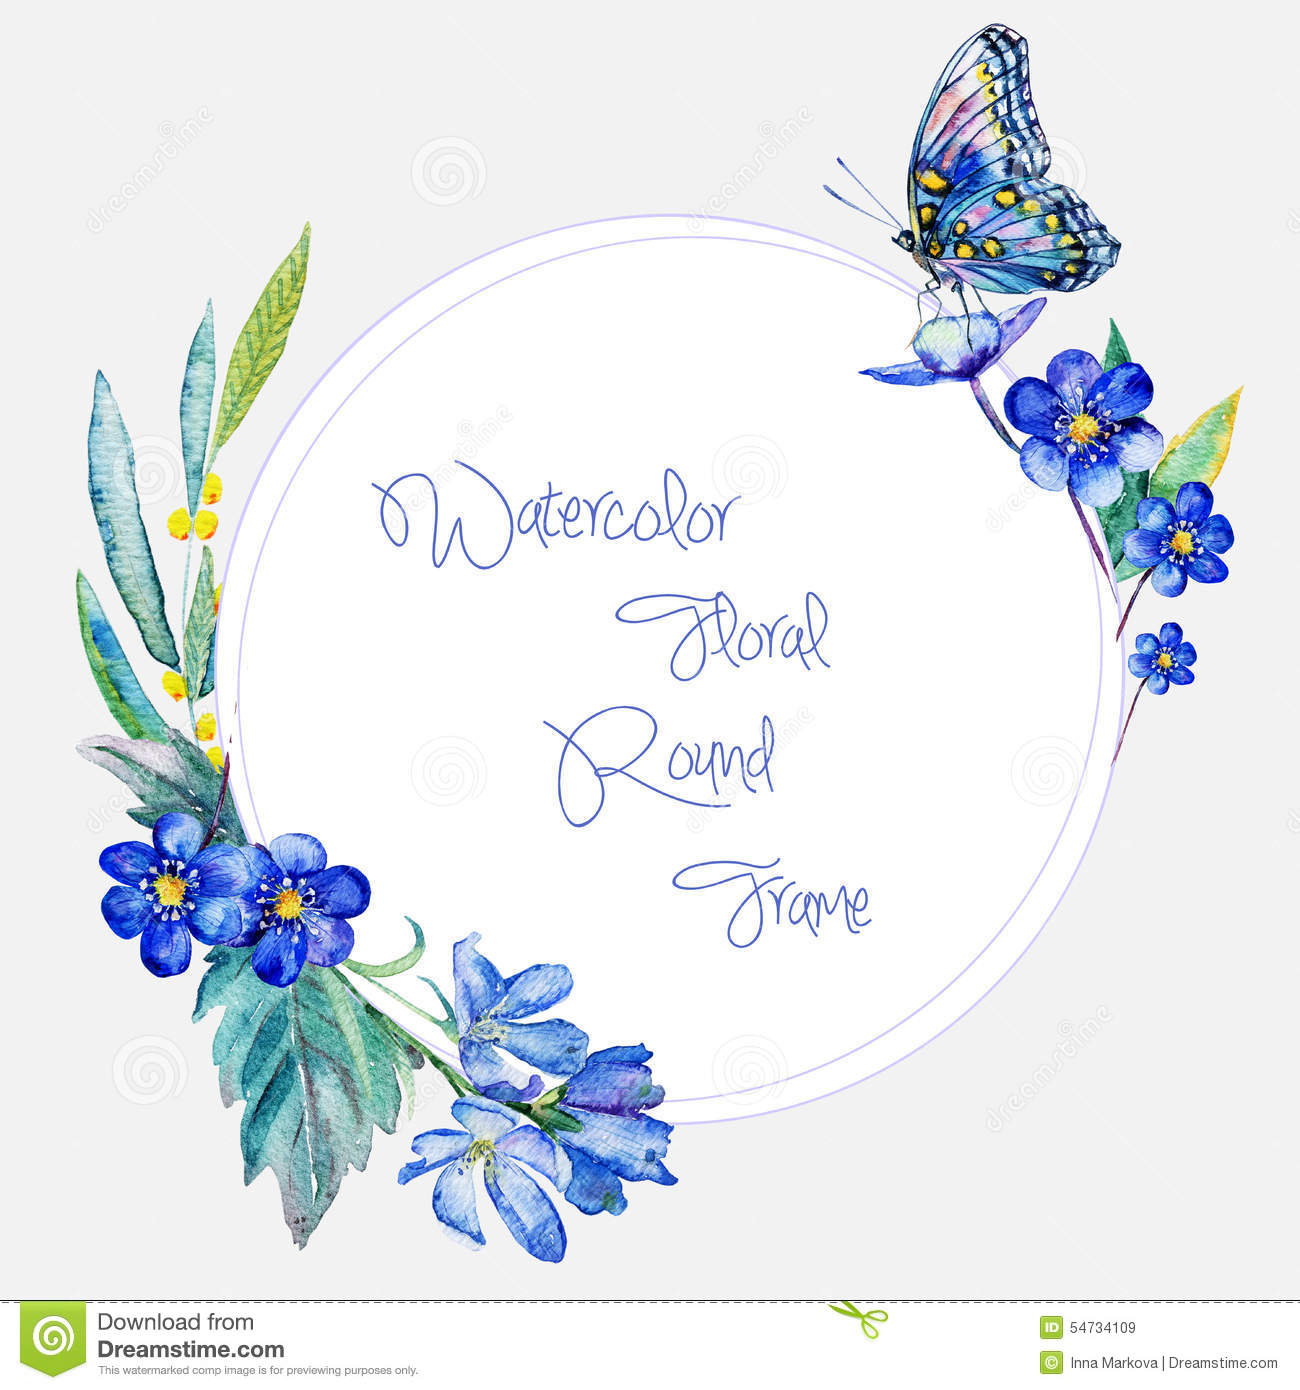 Cute Roses Wallpapers Download Watercolor Round Frame Of Blue Flowers And Butterfly